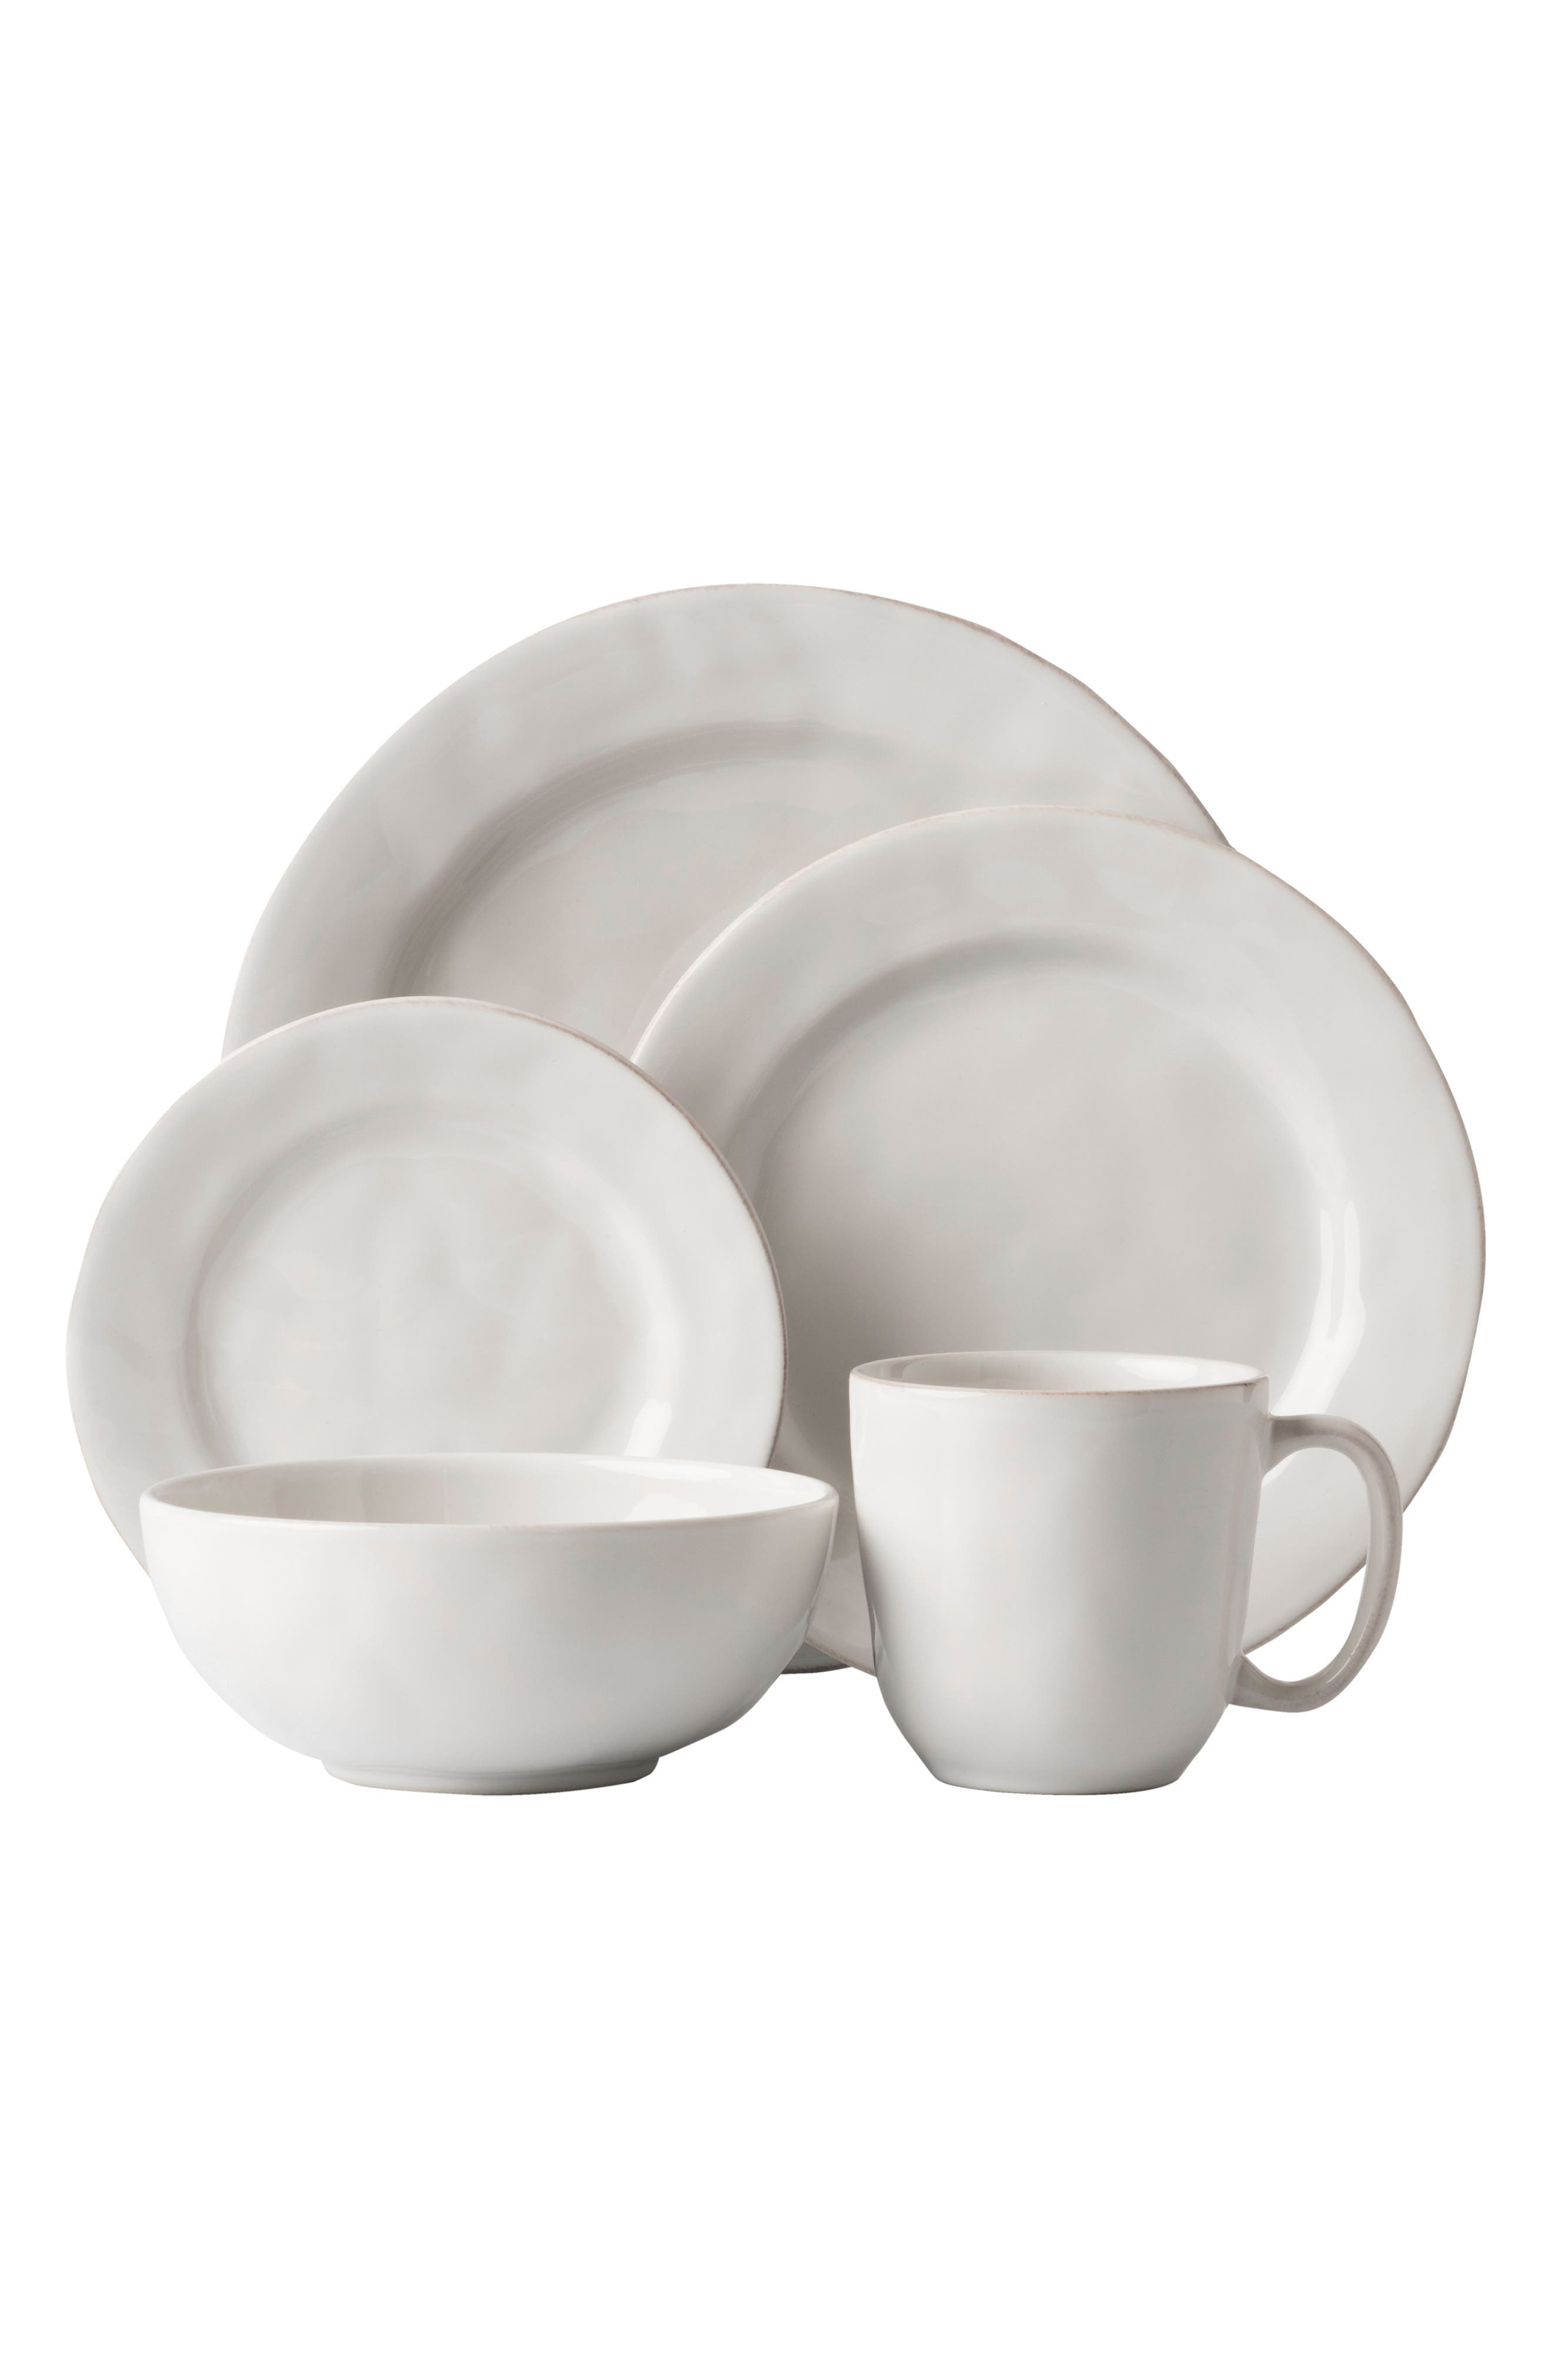 'Puro' 5-Piece Dinnerware Place Setting,                             Main thumbnail 1, color,                             White